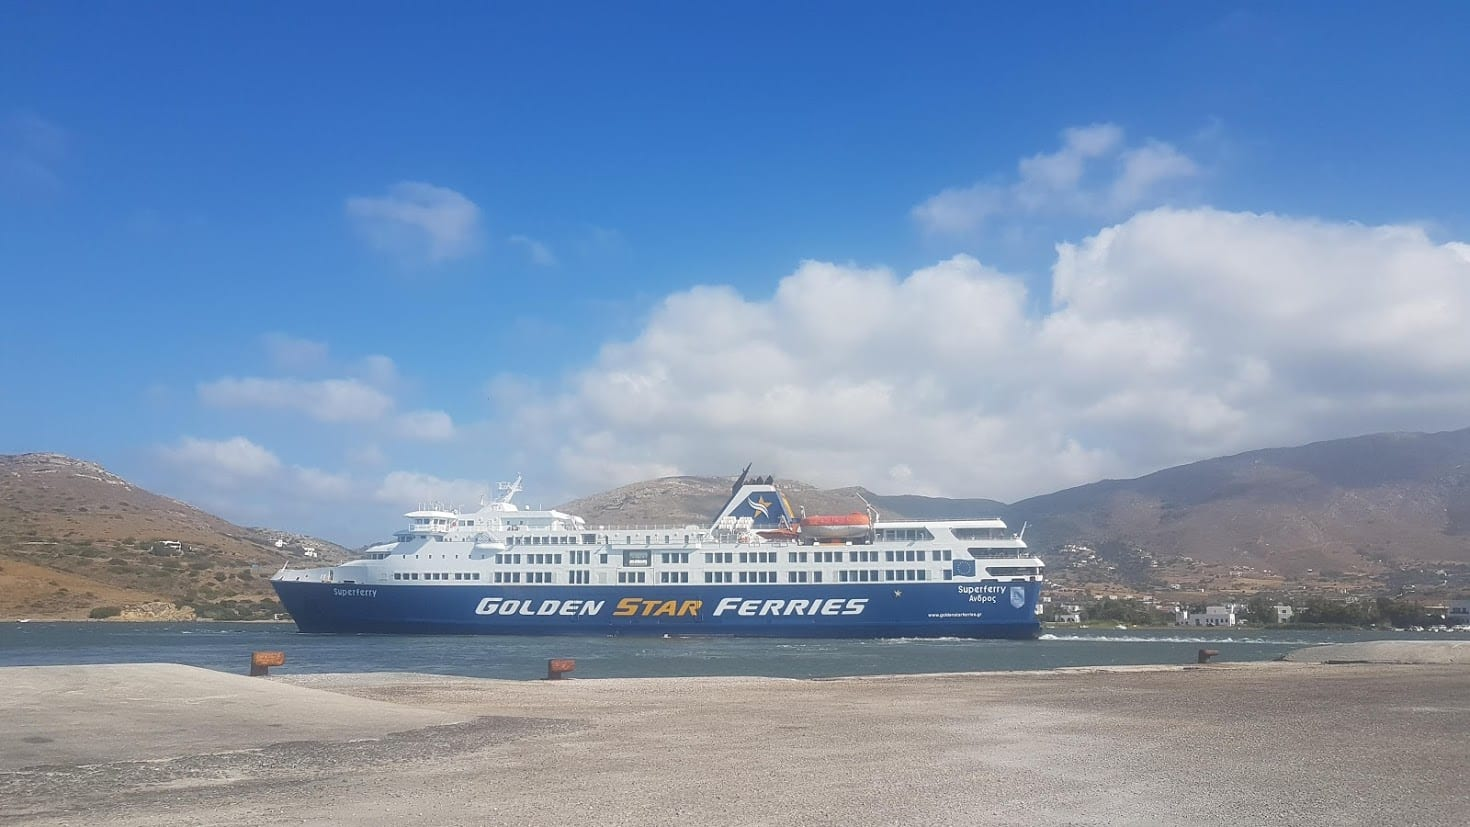 Golden Star ferries pulling into Andros Greece ferry port